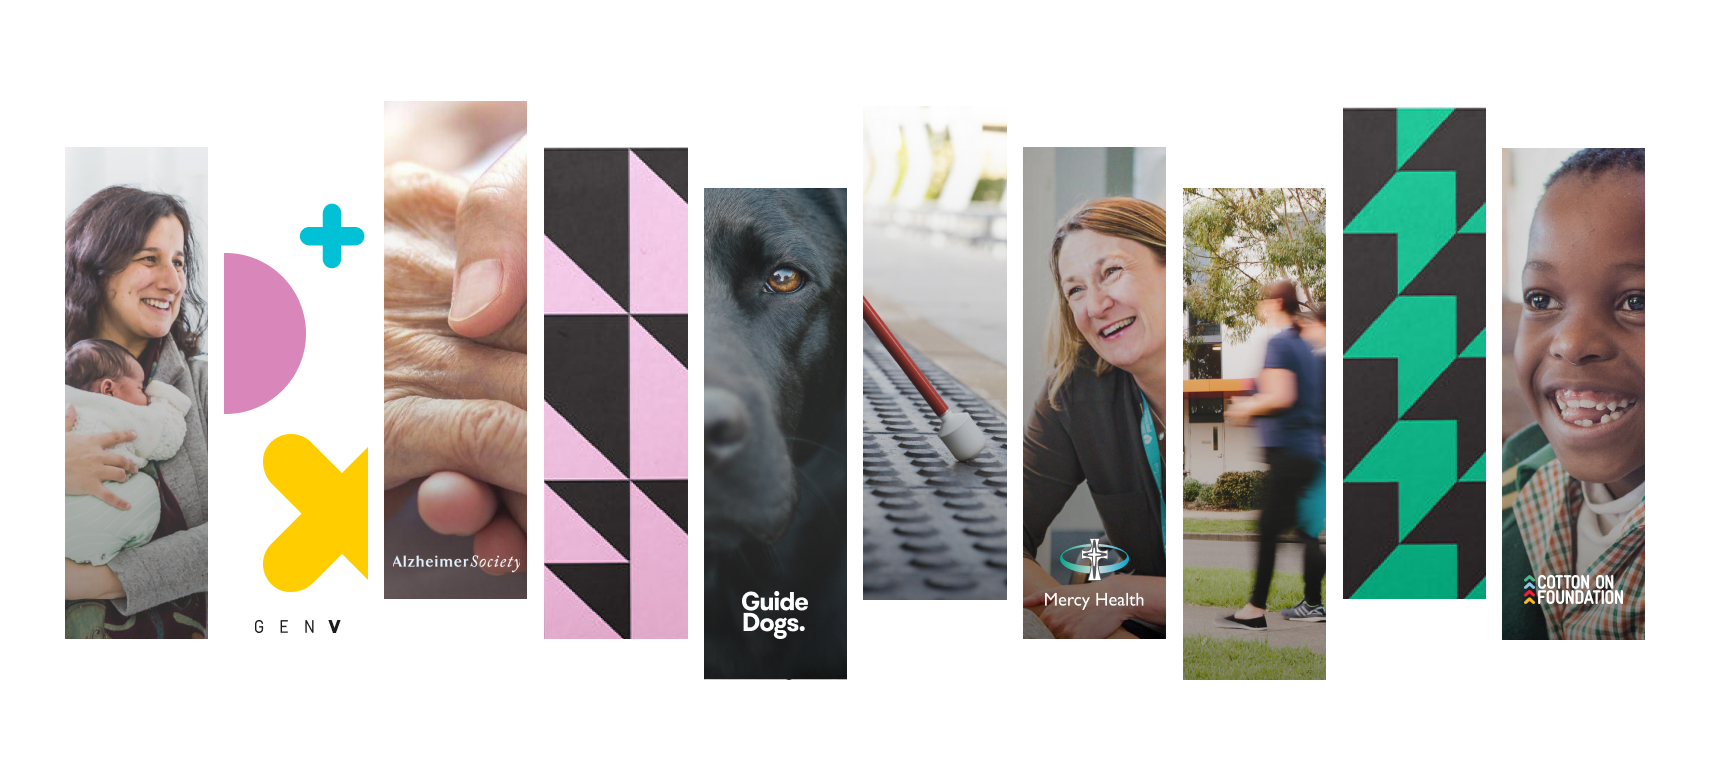 Montage of images of people smiling and Guide Dogs.